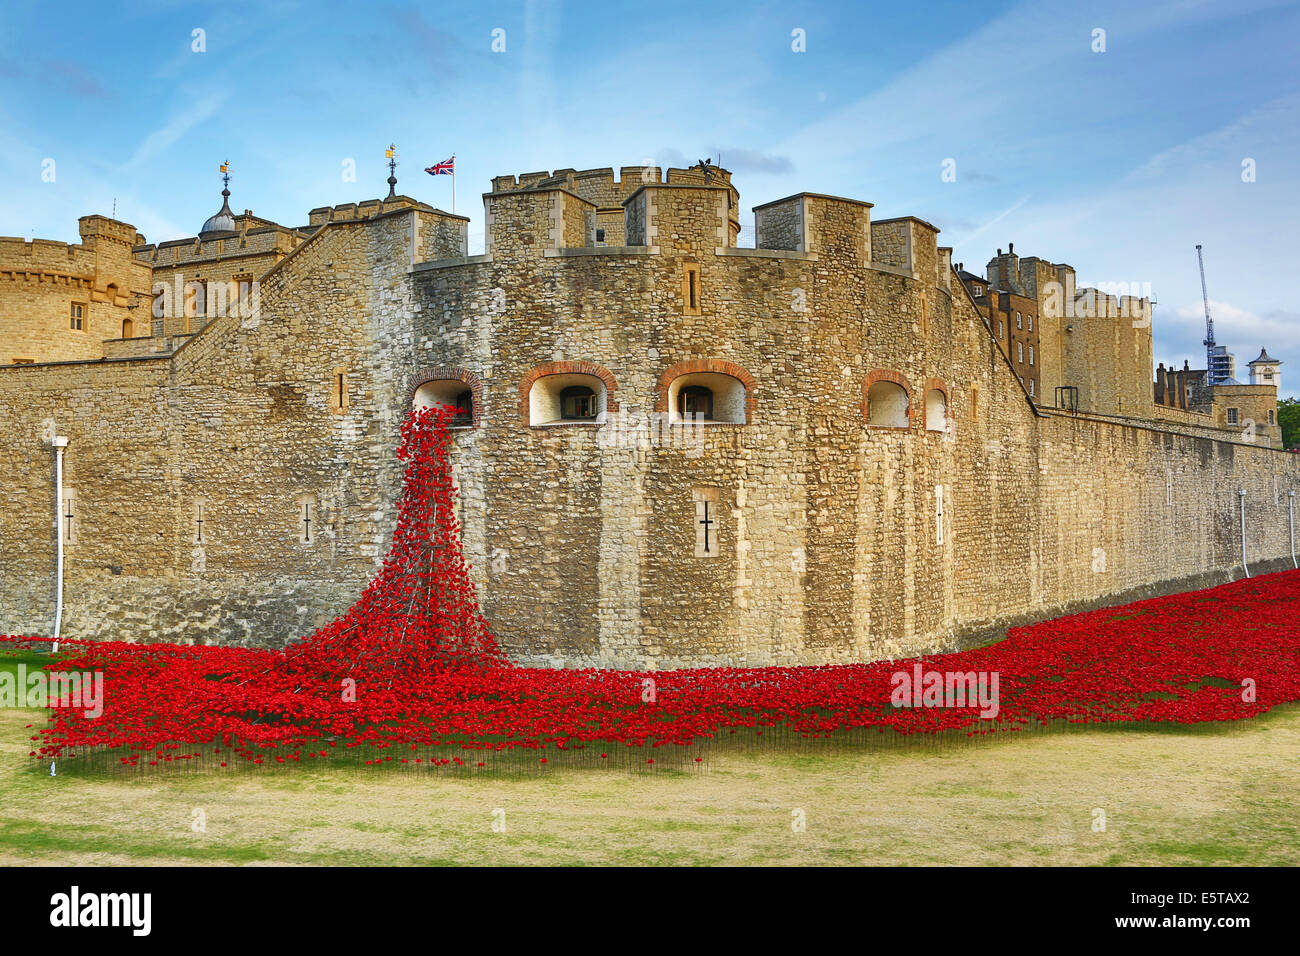 London, UK. 5th August 2014. The sea of poppies around the Tower of London at the opening of the  Blood Swept Lands - Stock Image